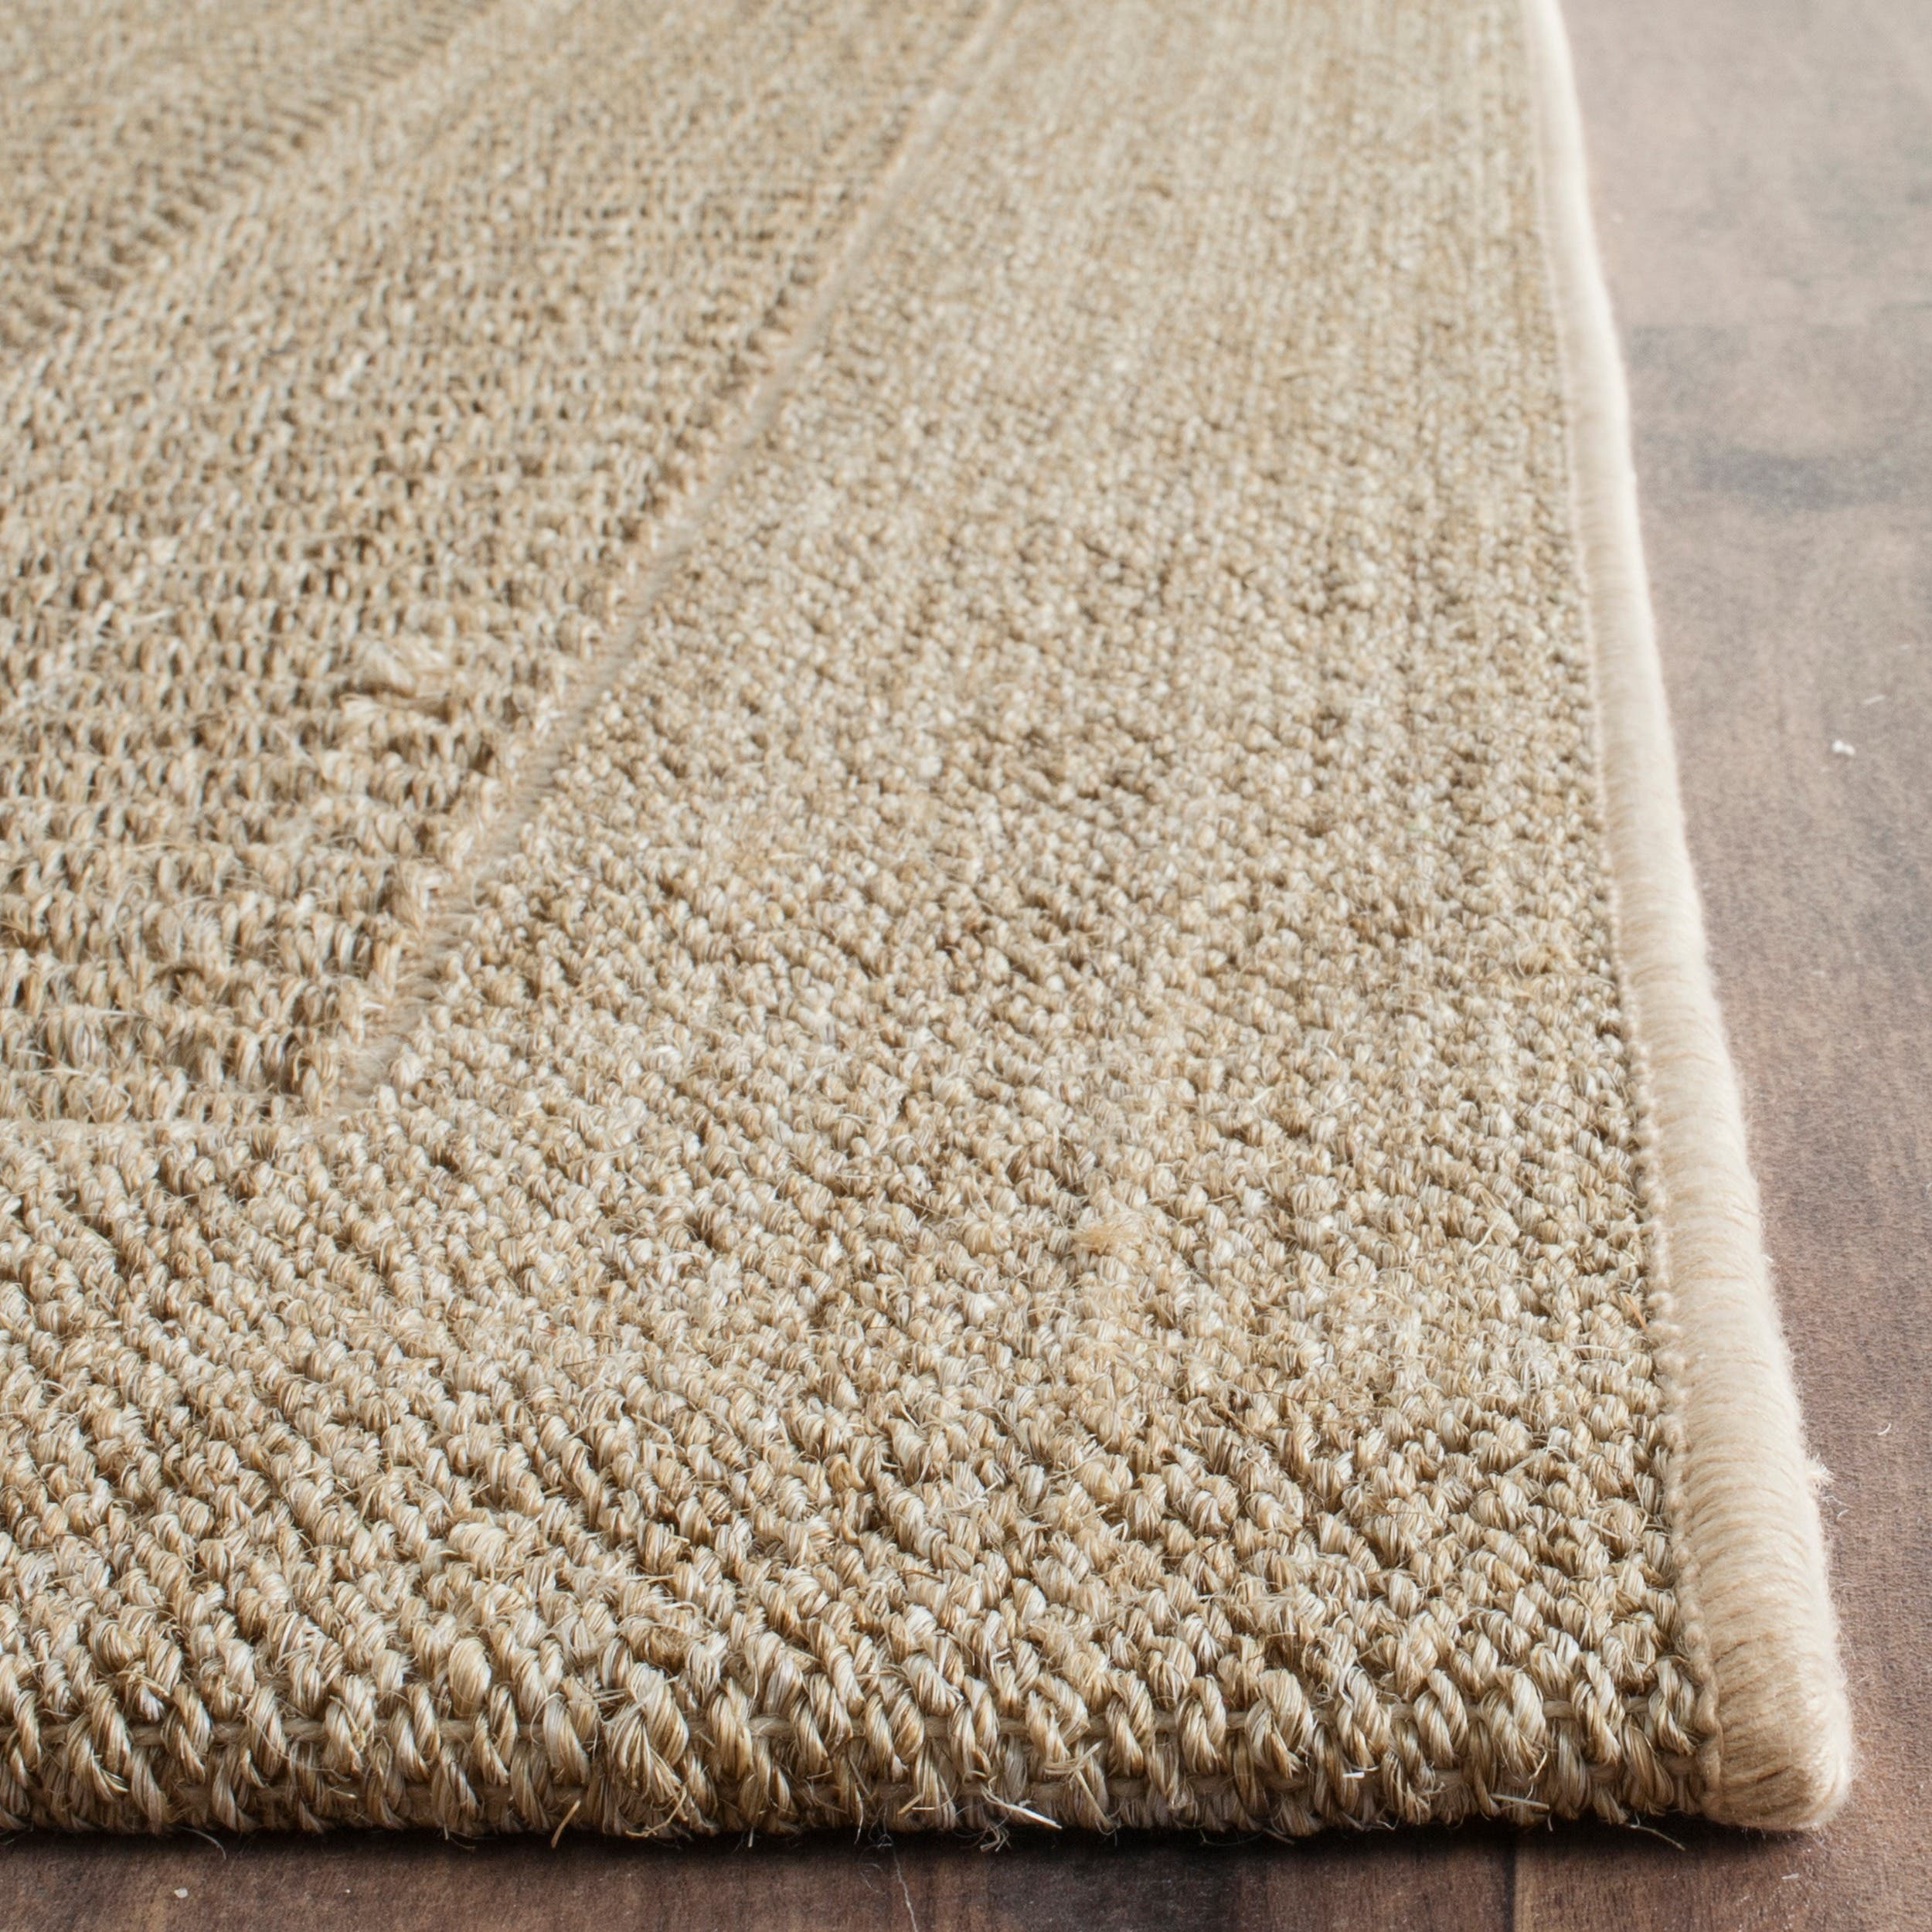 Beach Sand Area Rug: Buy 7x9 - 10x14 Rugs Online At Overstock.com